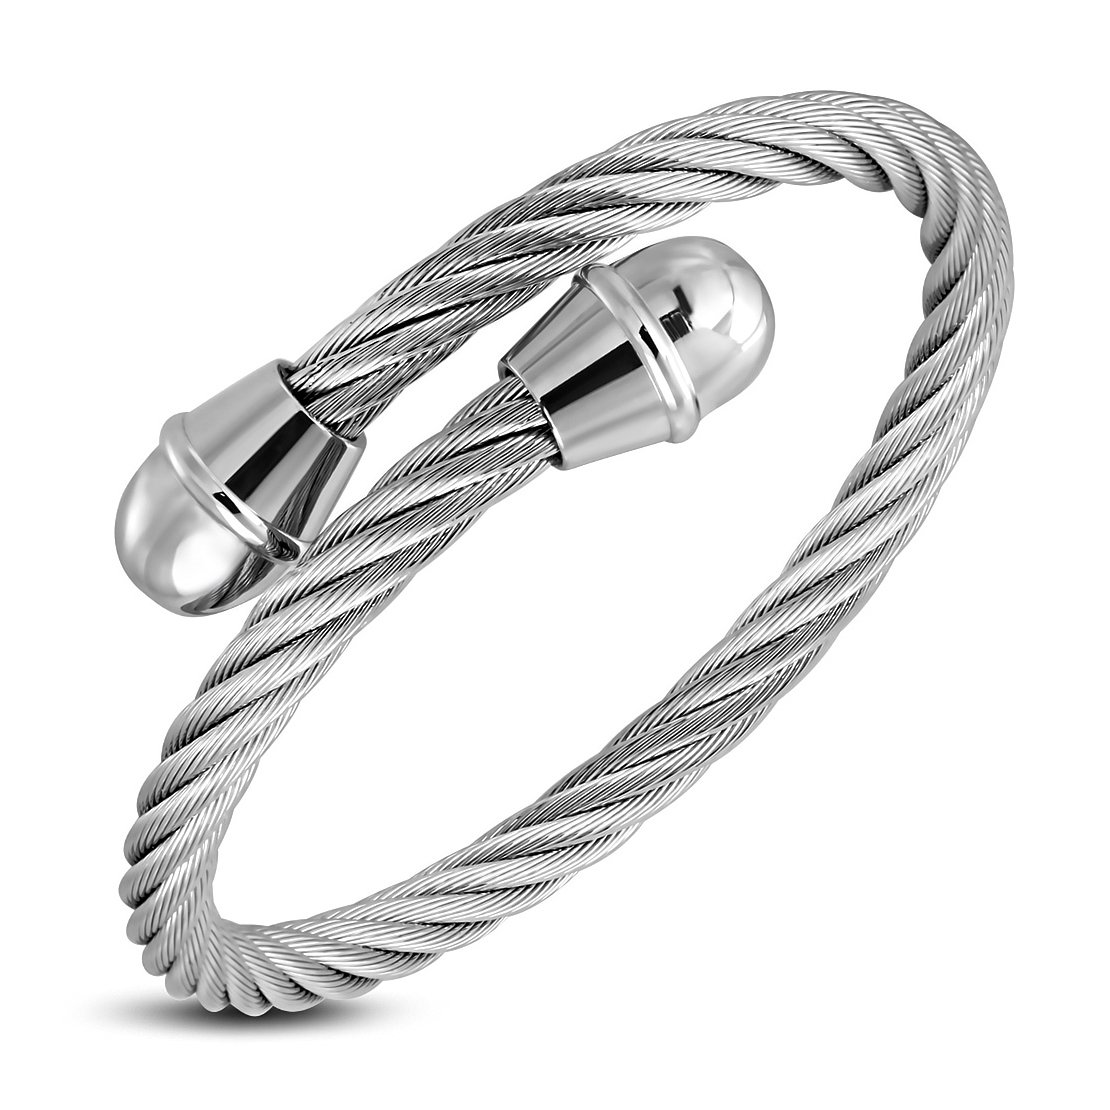 Stainless Steel Celtic Twisted Cable Wire Round Torc Cuff Bangle Length 9.2